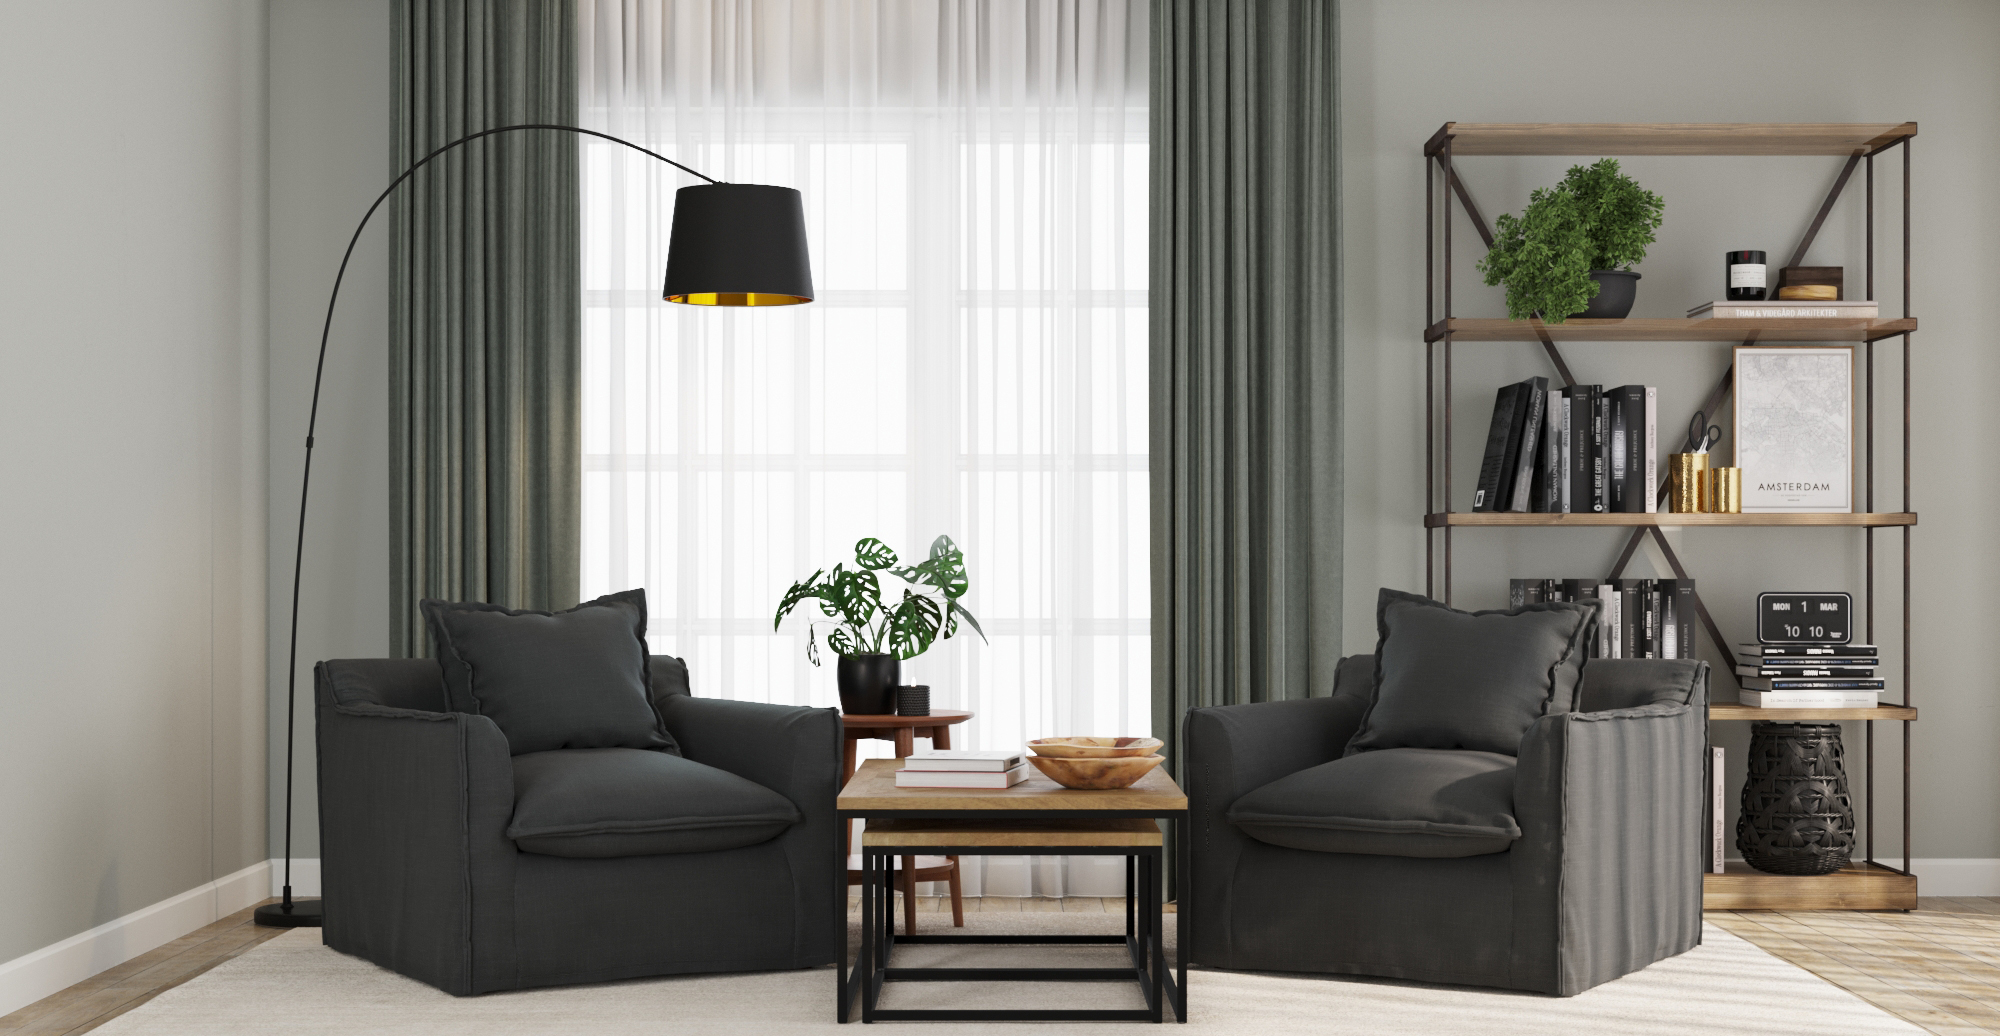 Brosa Palermo Armchair styled in modern contemporary living room